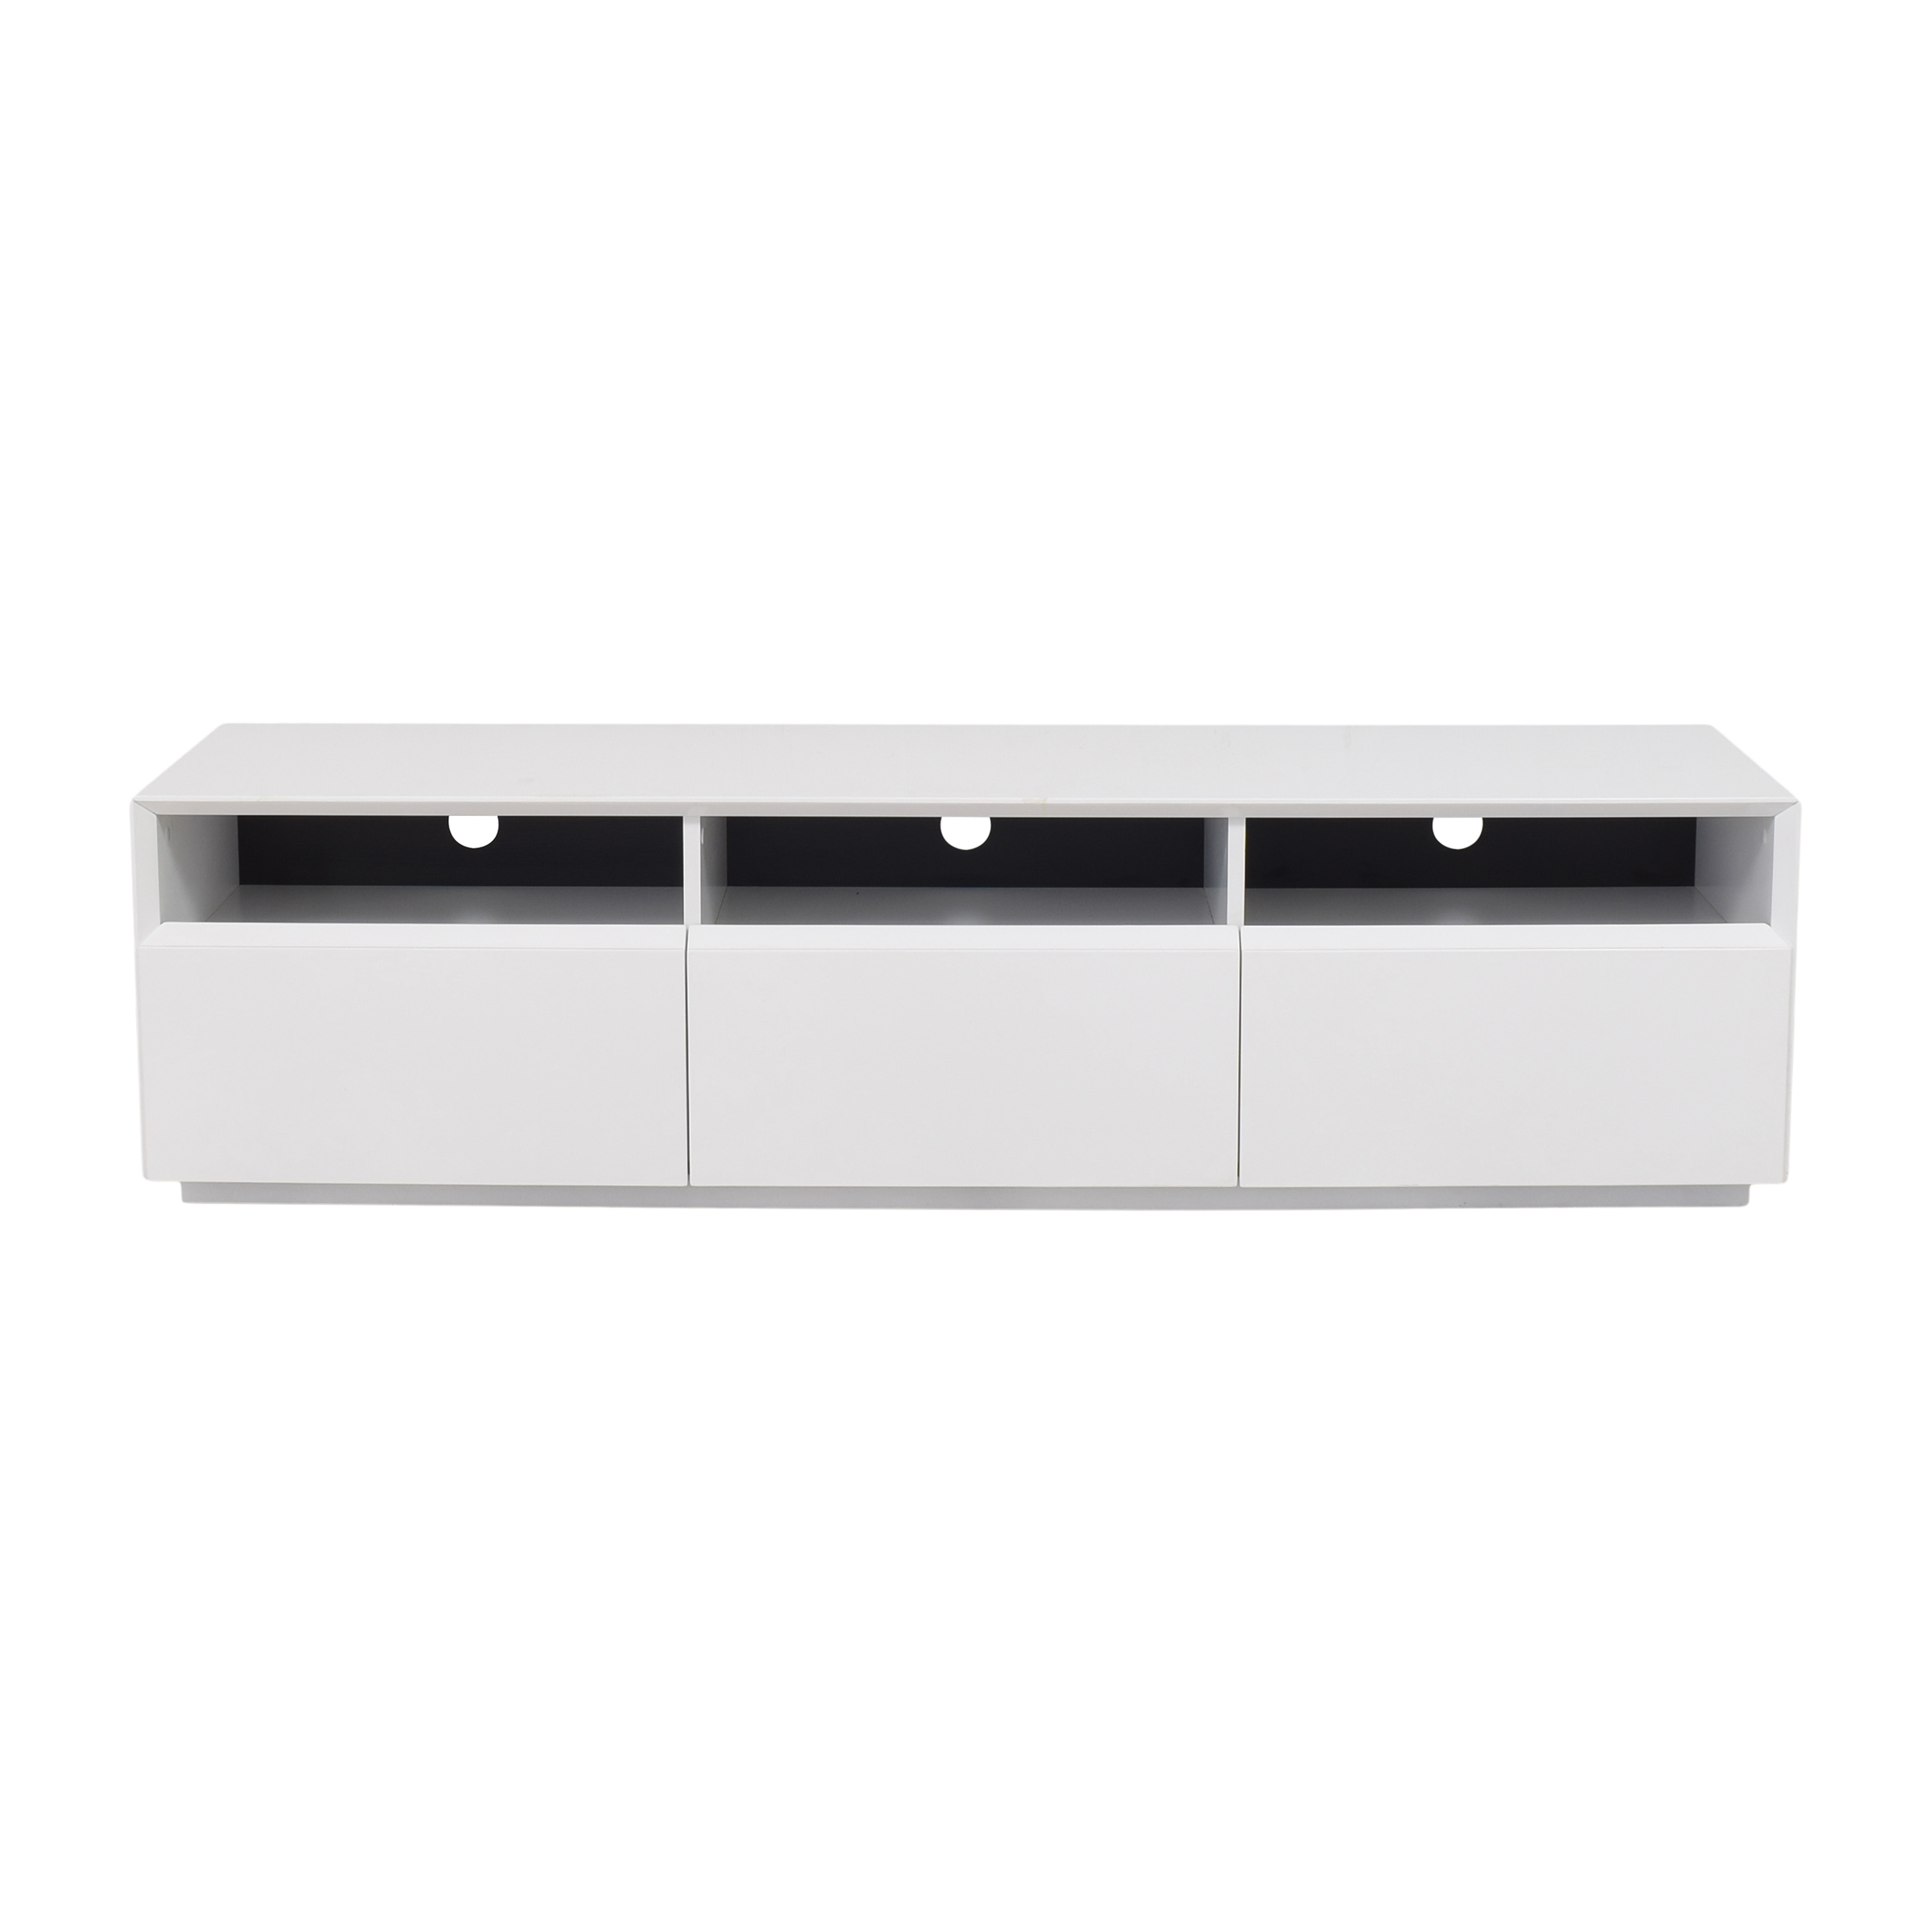 J&M Furniture J&M Furniture Modern TV Stand Media Units